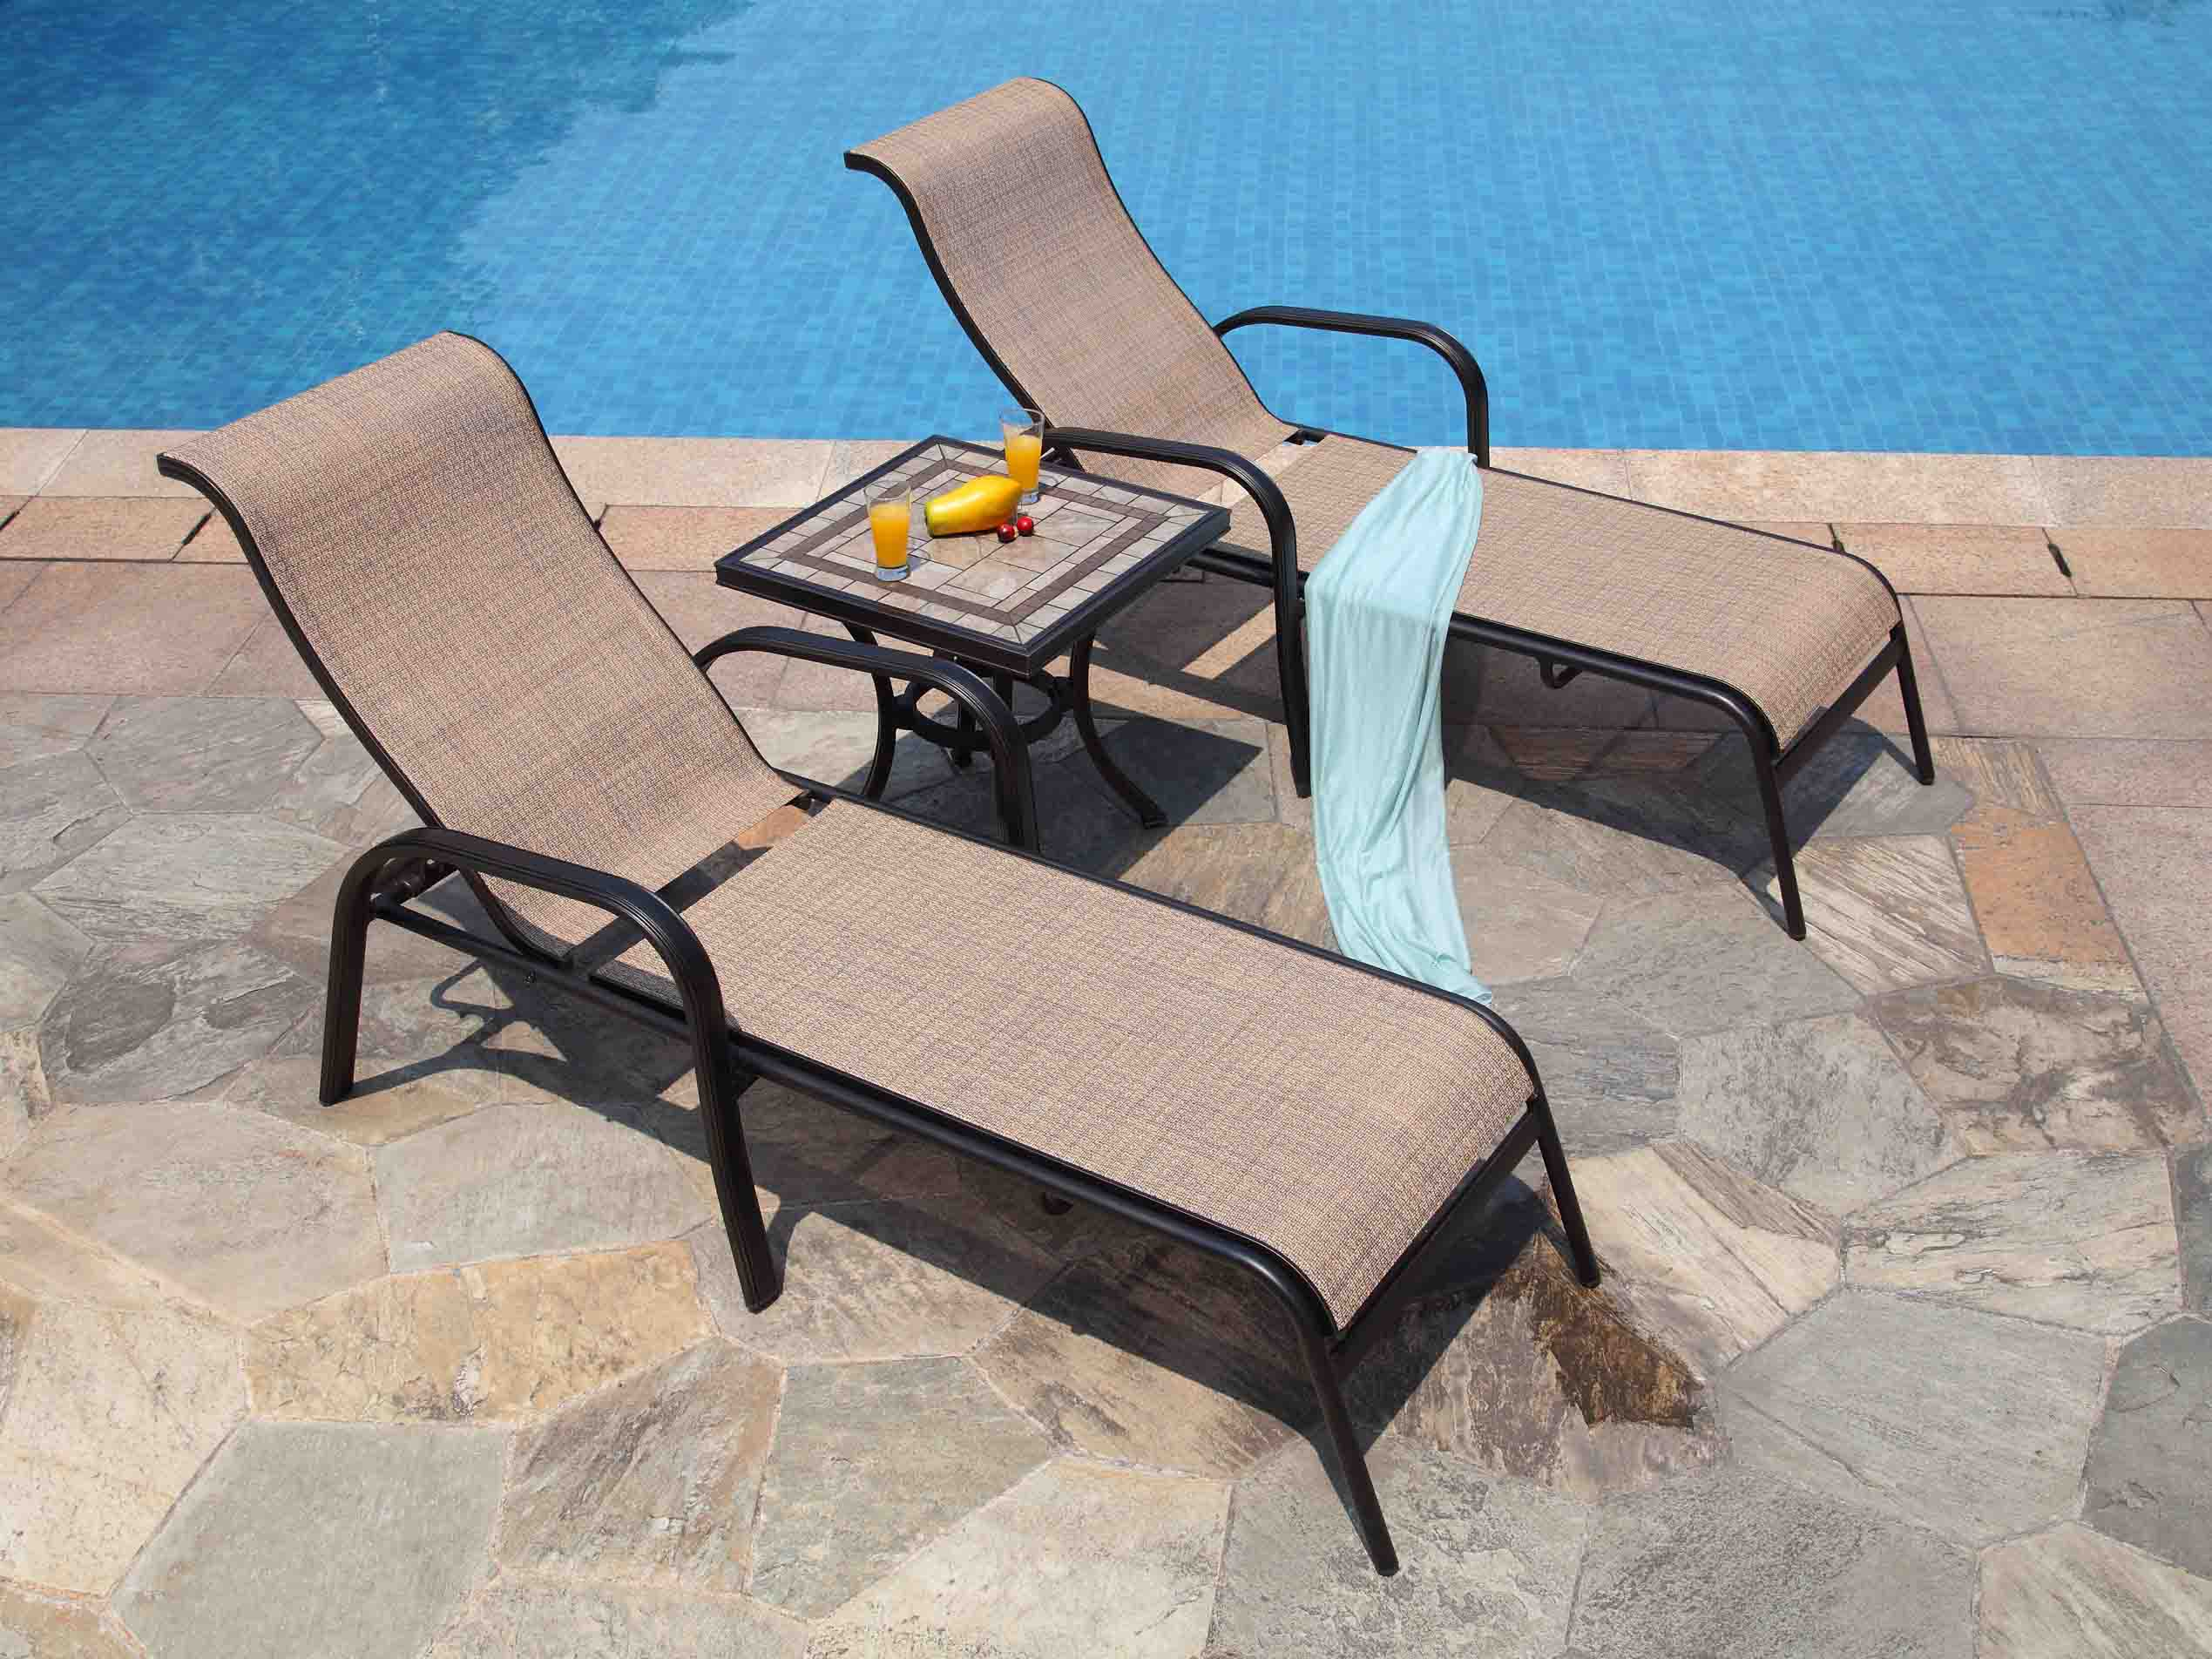 L673 Outdoor double chaise lounge chairs